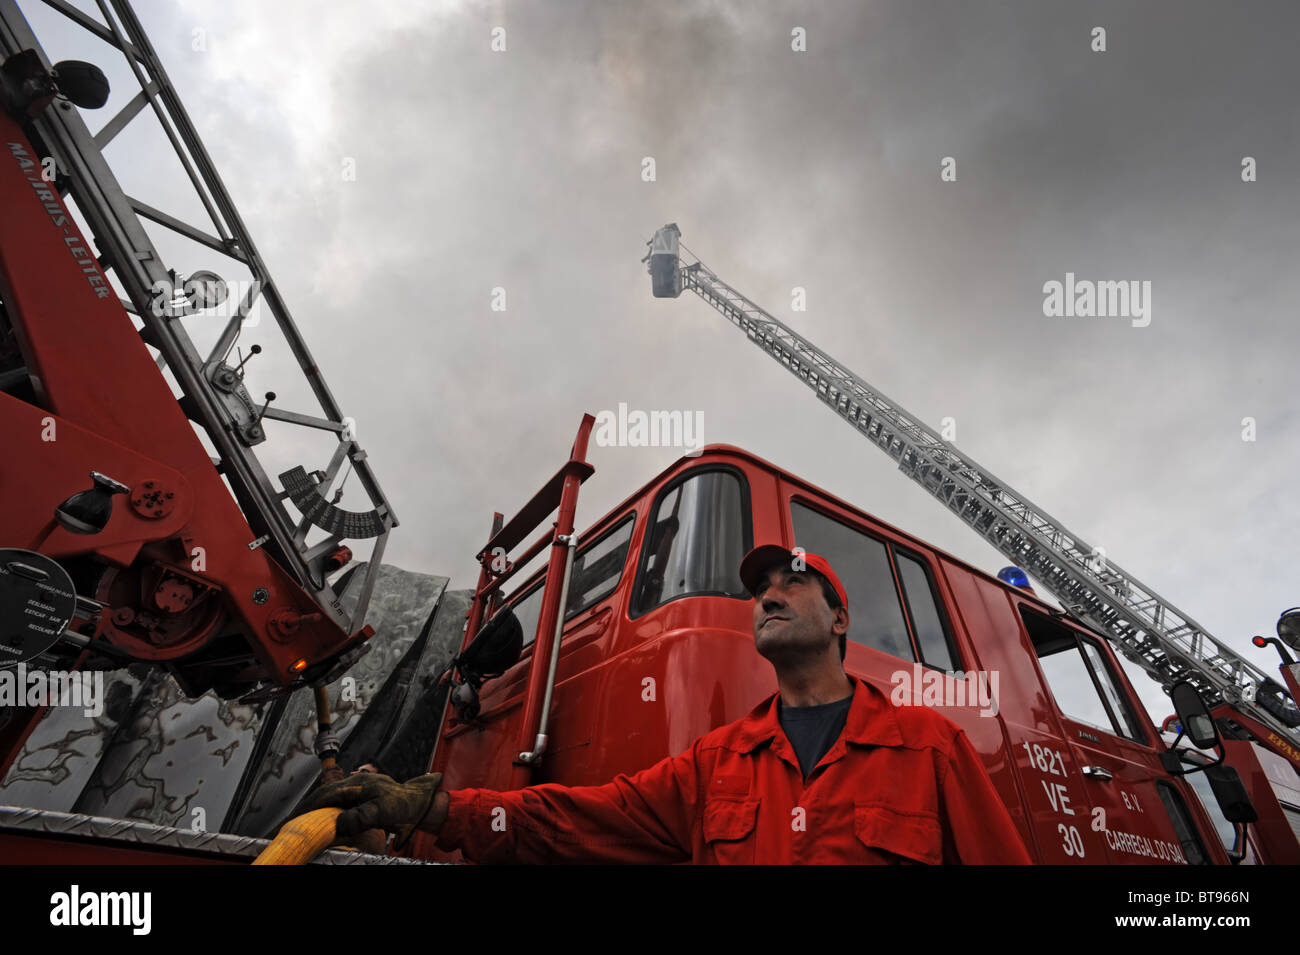 Fireman looking up next to a fire truck with an extension